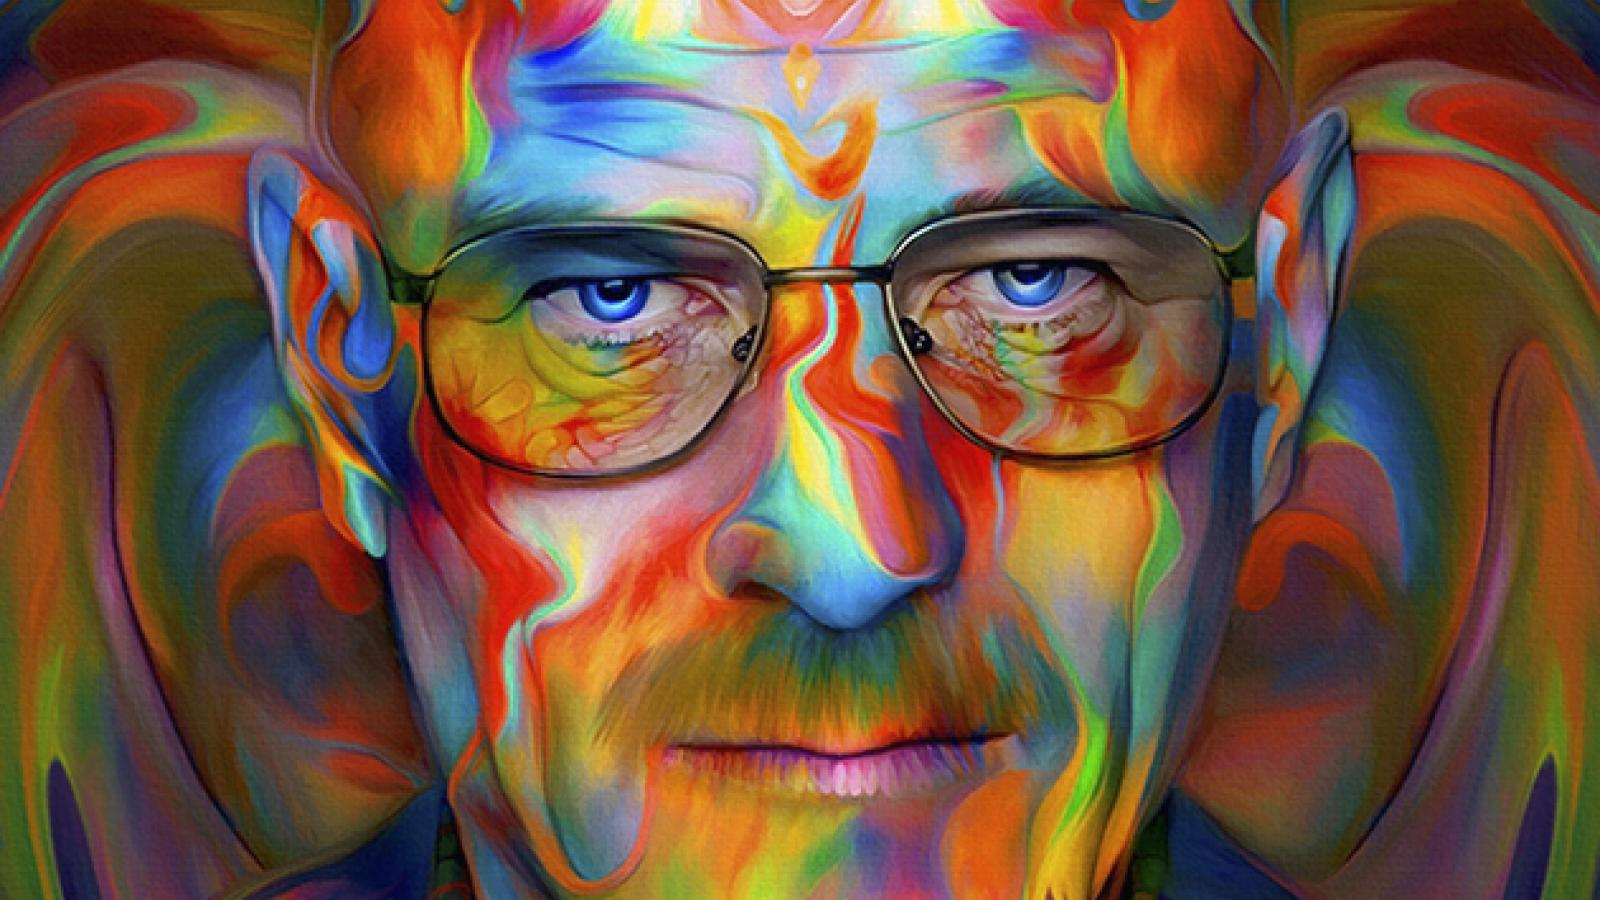 Trippy Portraits by Nicky Barkla